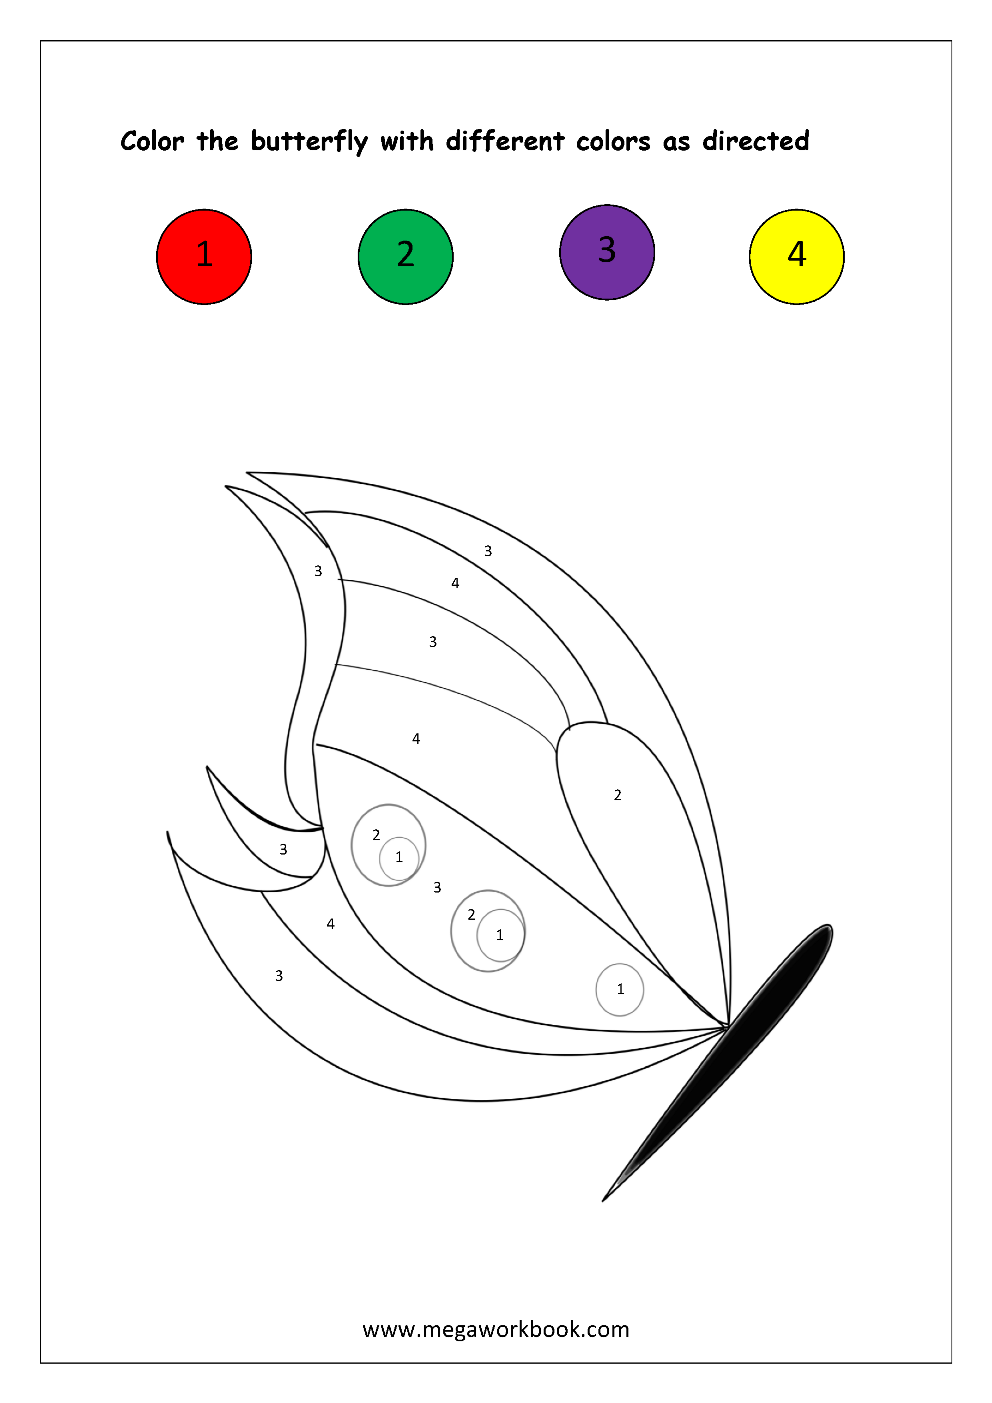 Free Printable Color Recognition